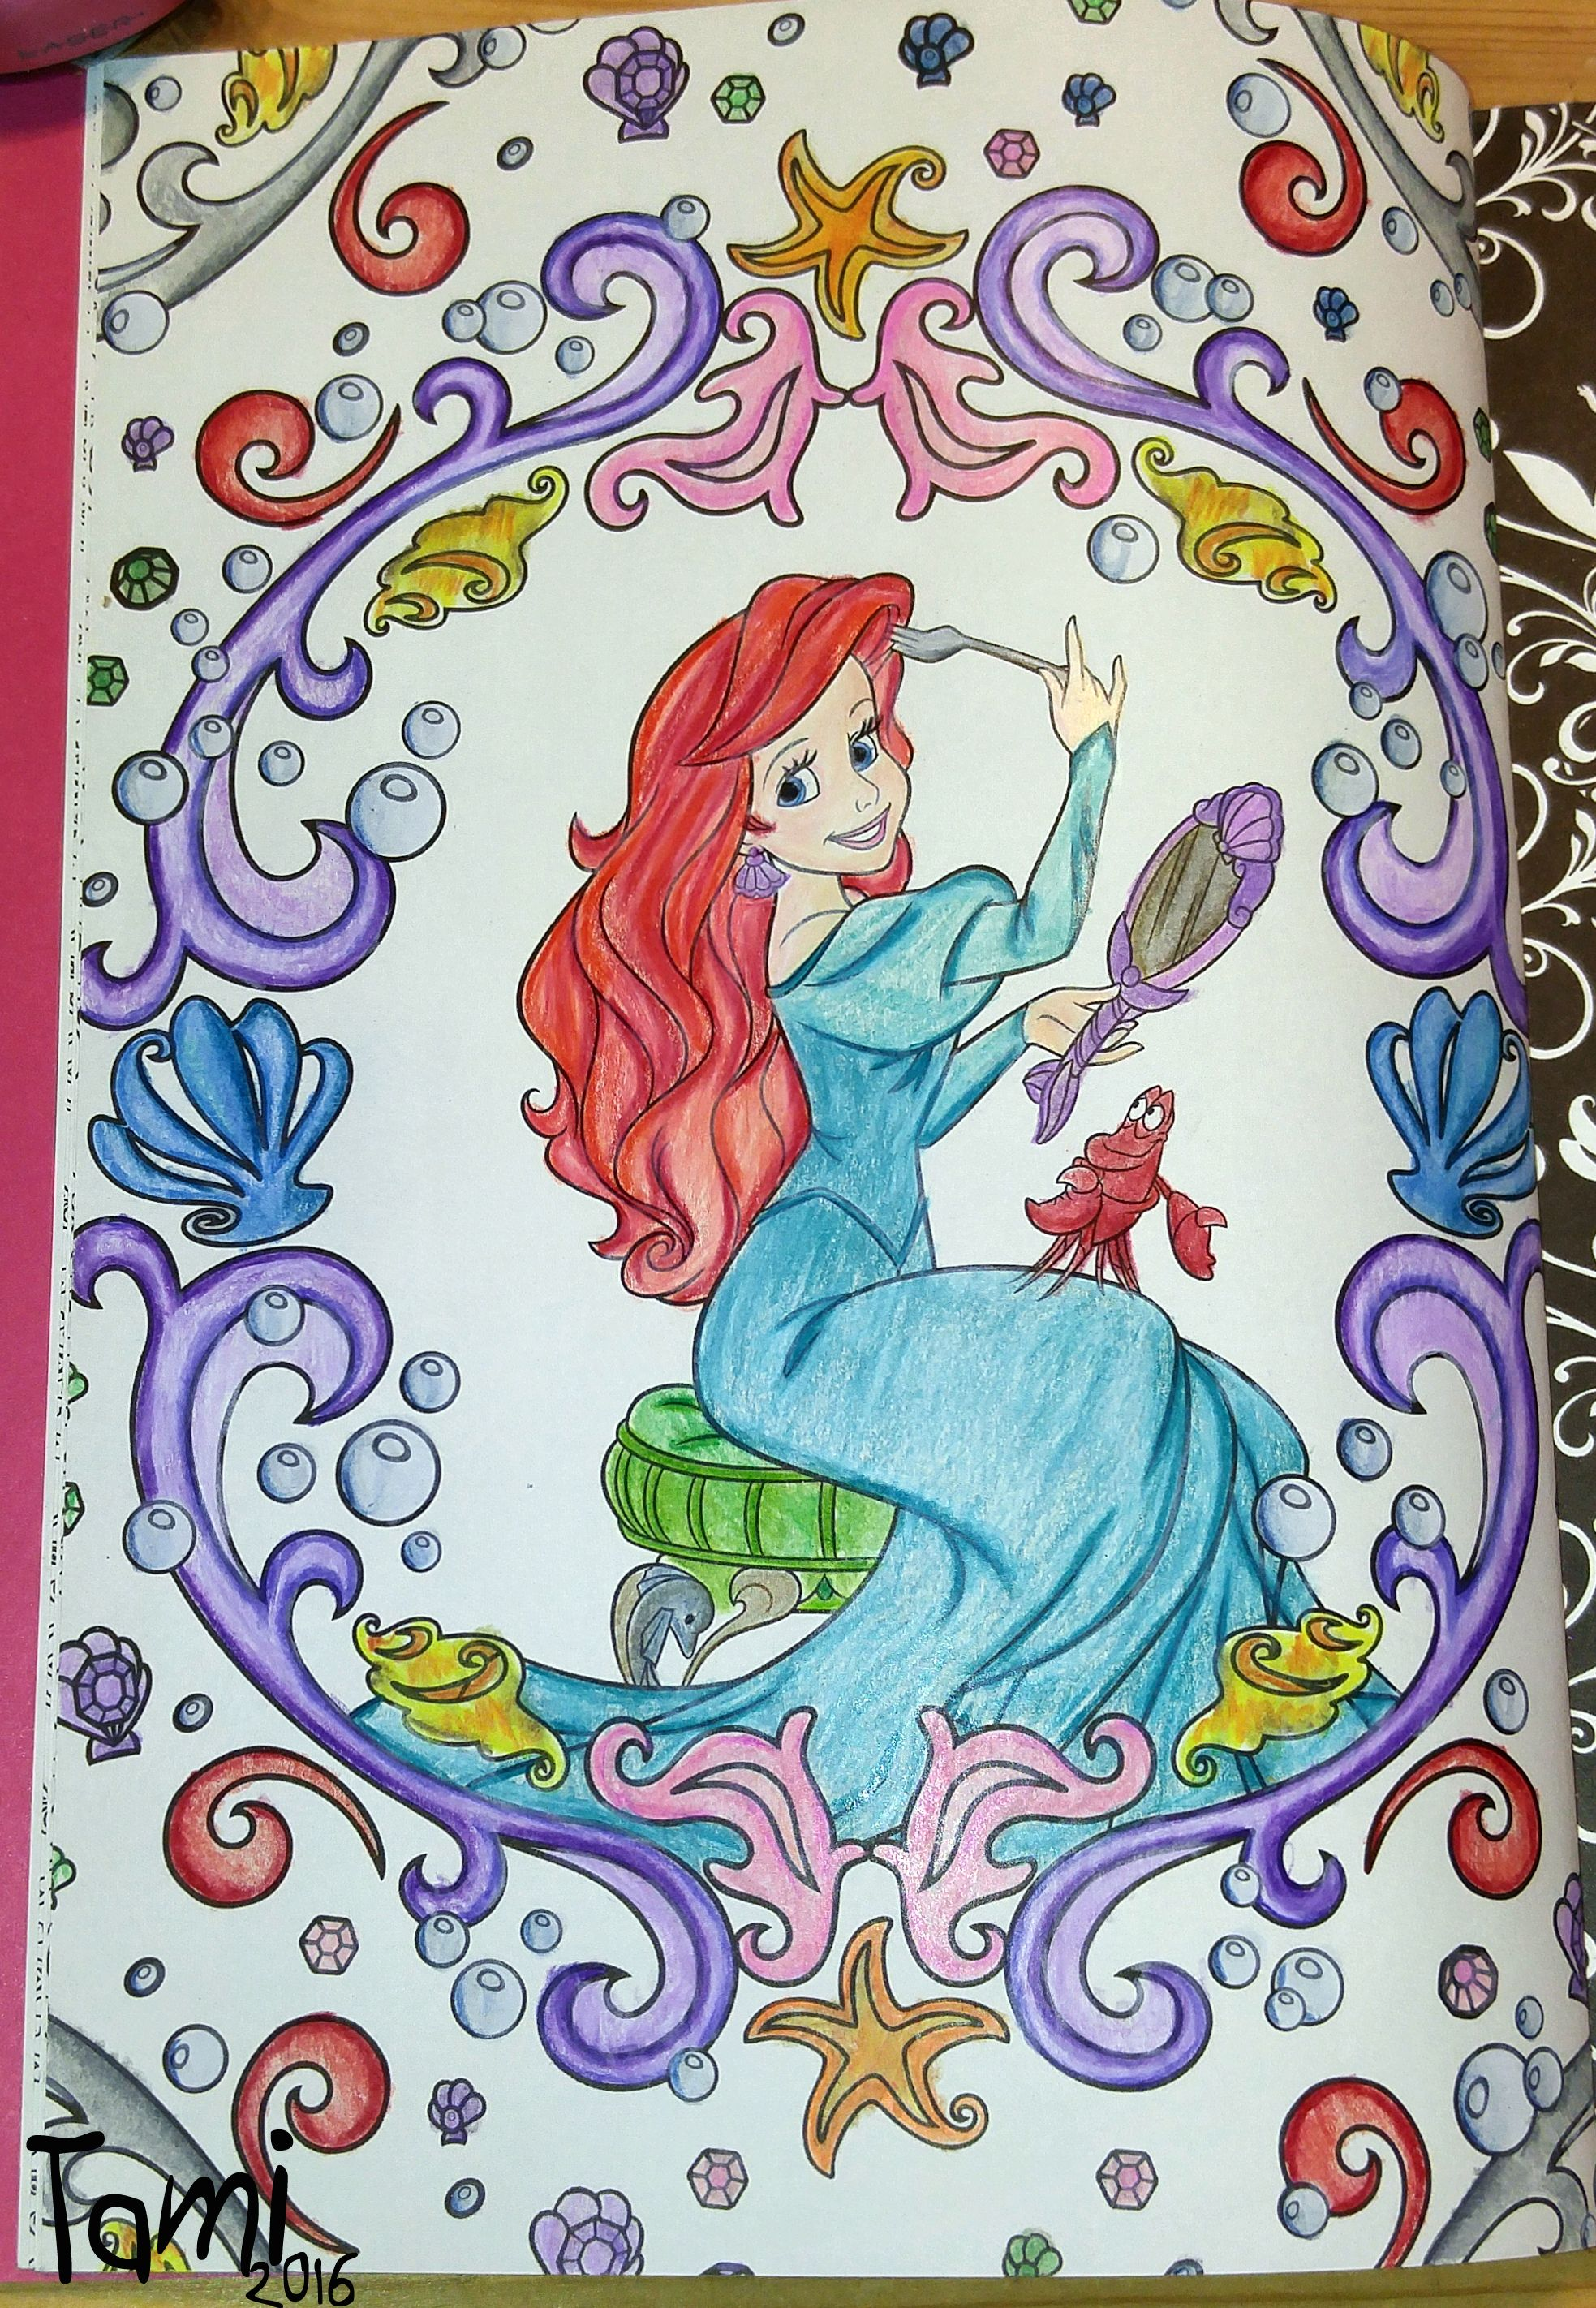 done with prismacolor pencils from Art Therapy Disney Princesses